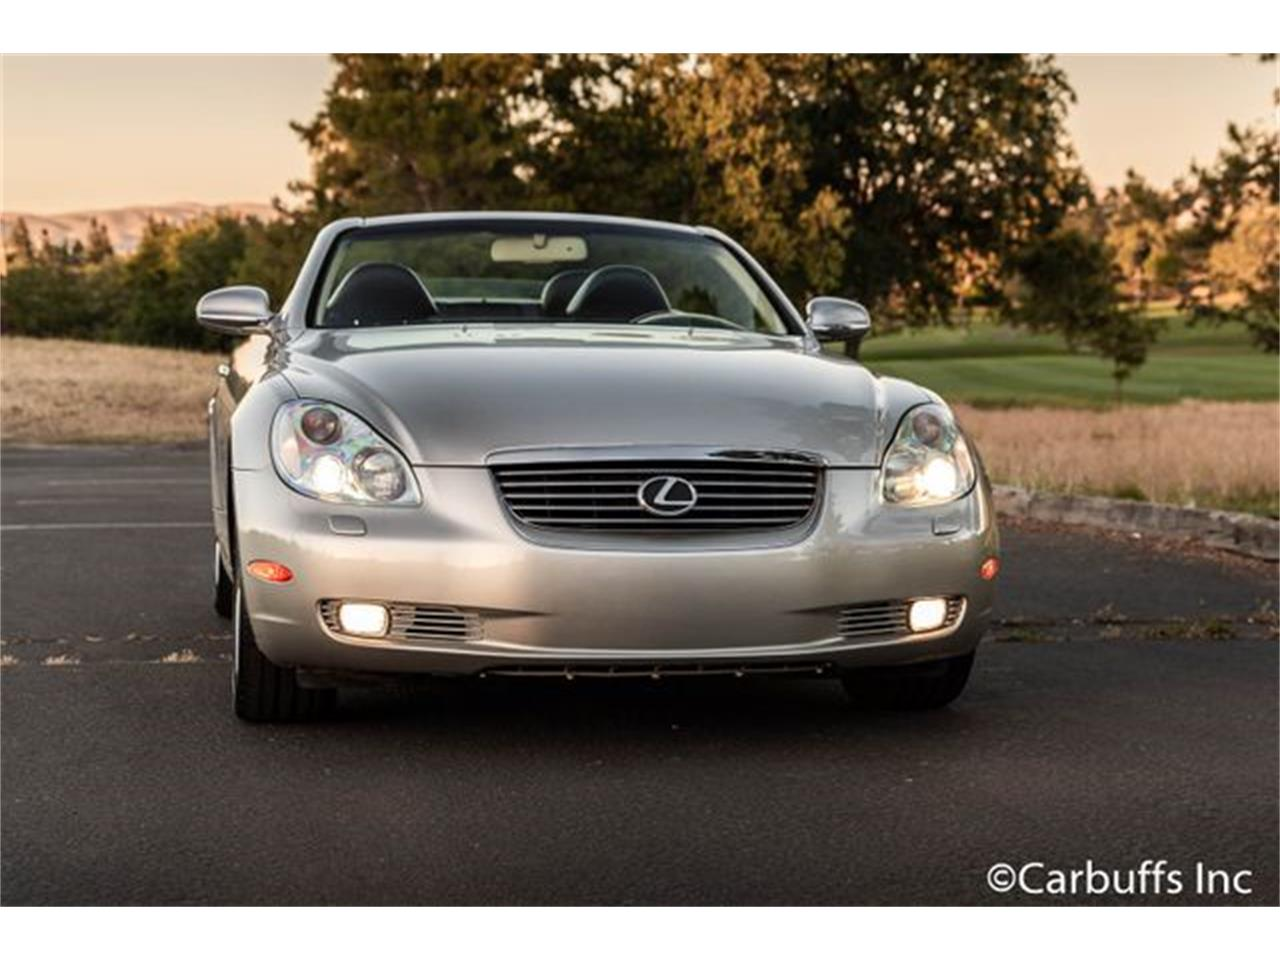 Large Picture of '04 Lexus SC400 located in California - QKET